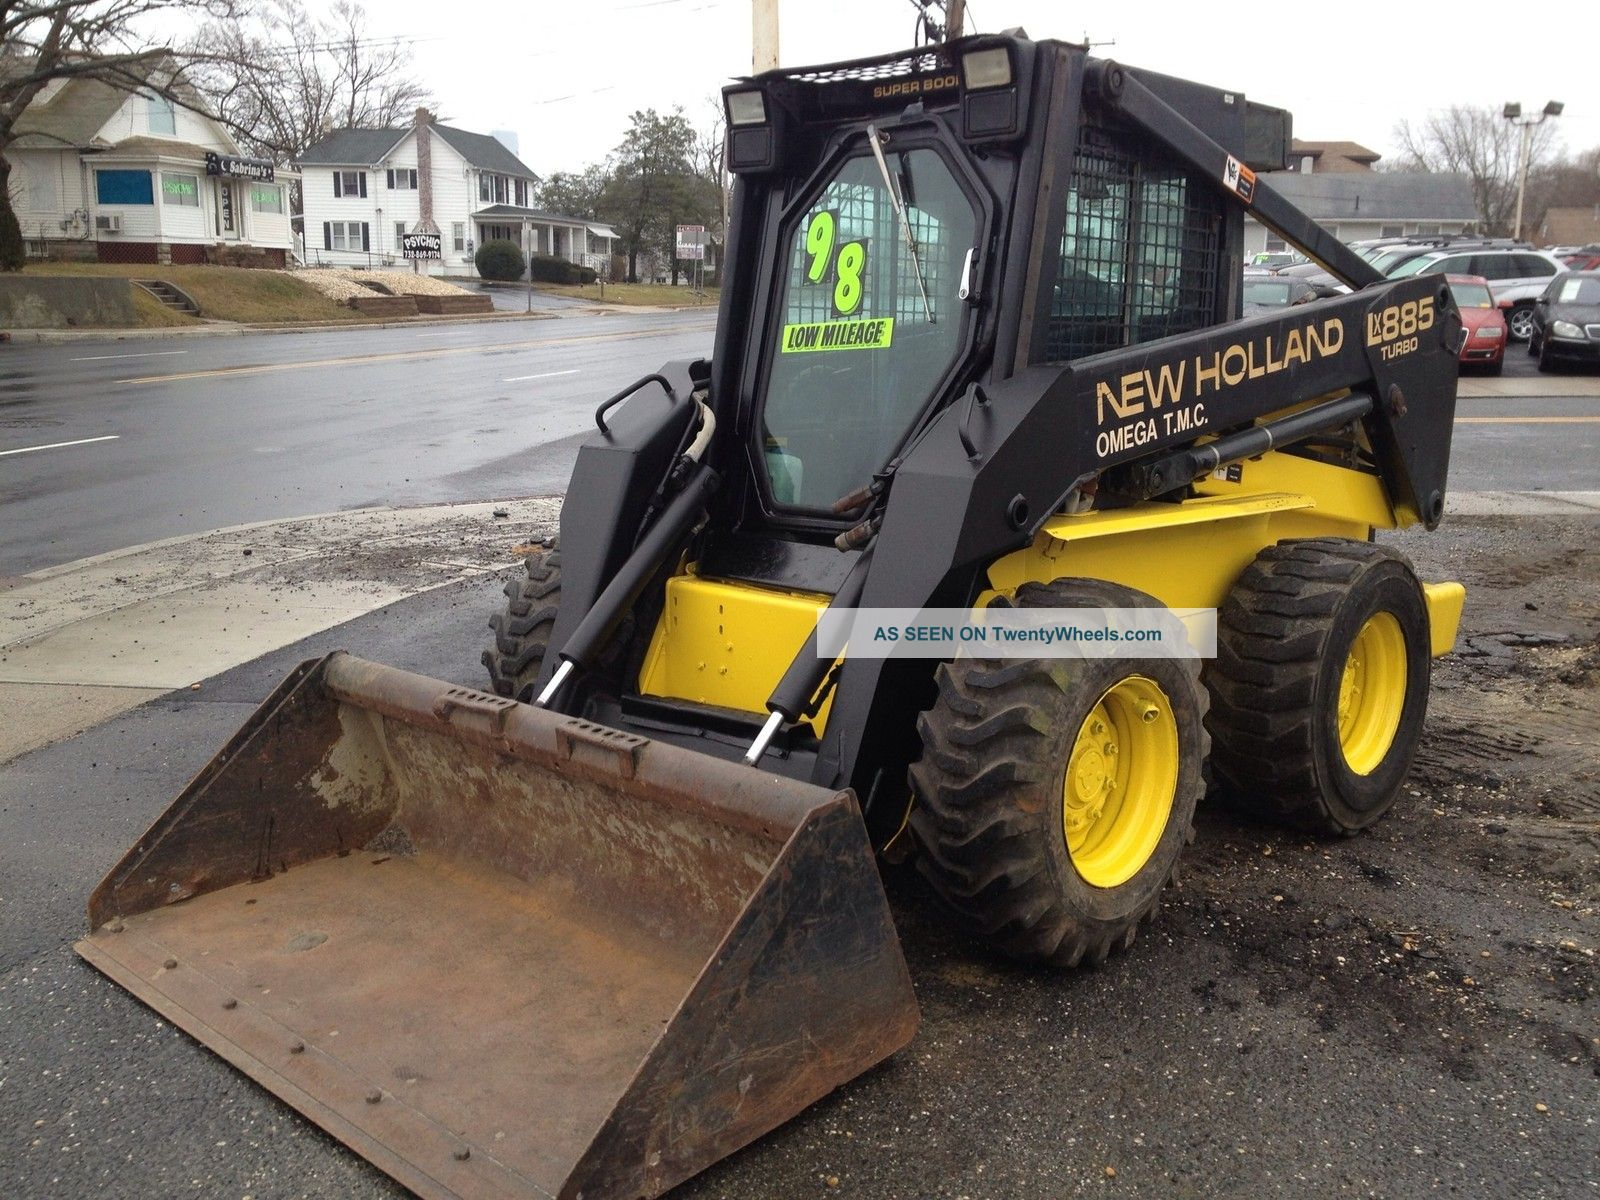 1998 New Holland Lx885 Turbo Skid Steer Loader With Only 300 Hours Fuse Box Diagram